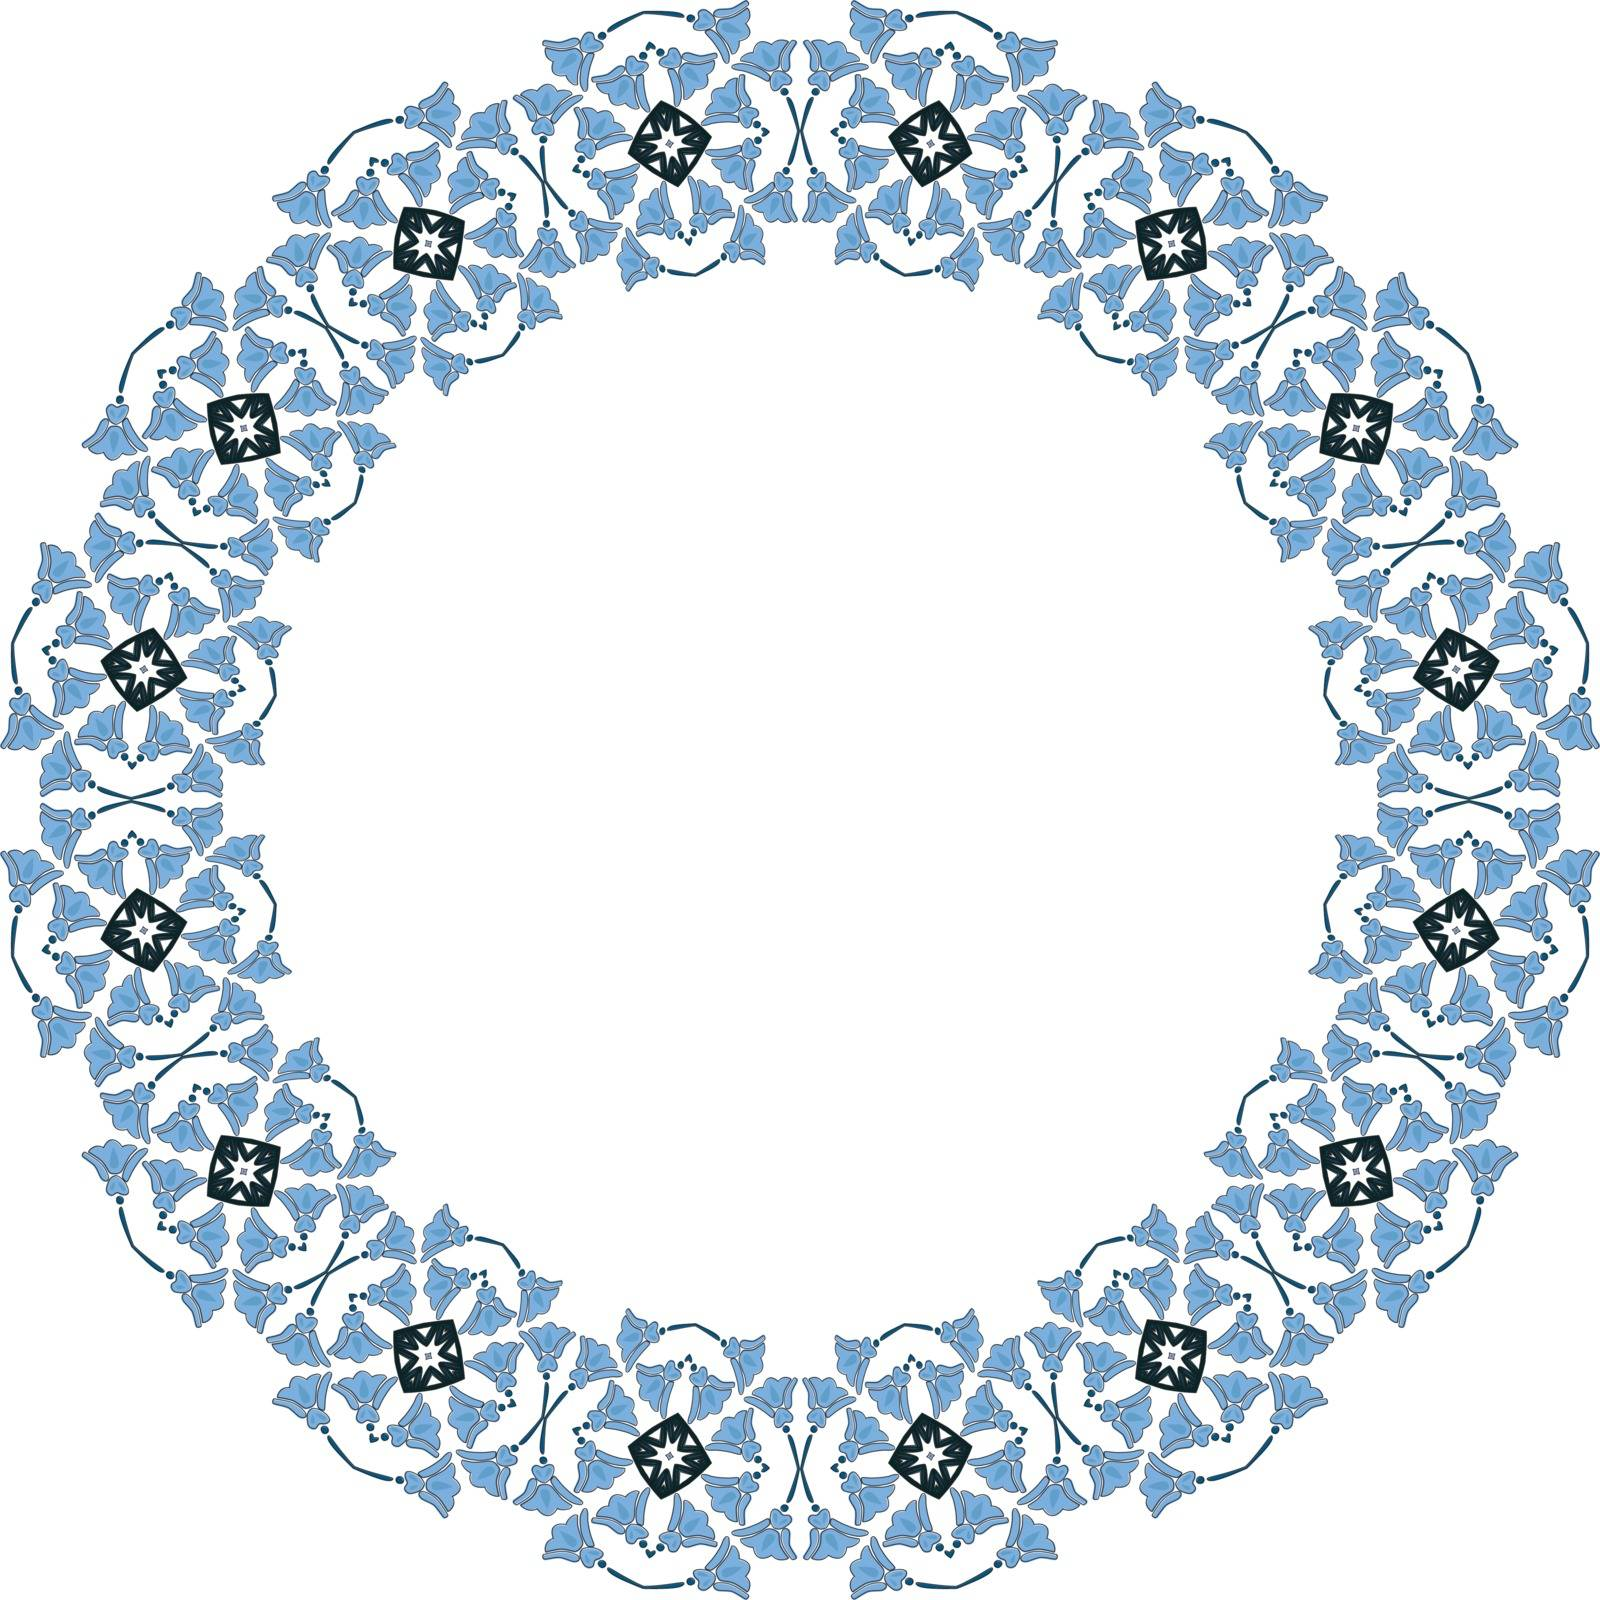 Decorative illustrated circle frame made of floral elements